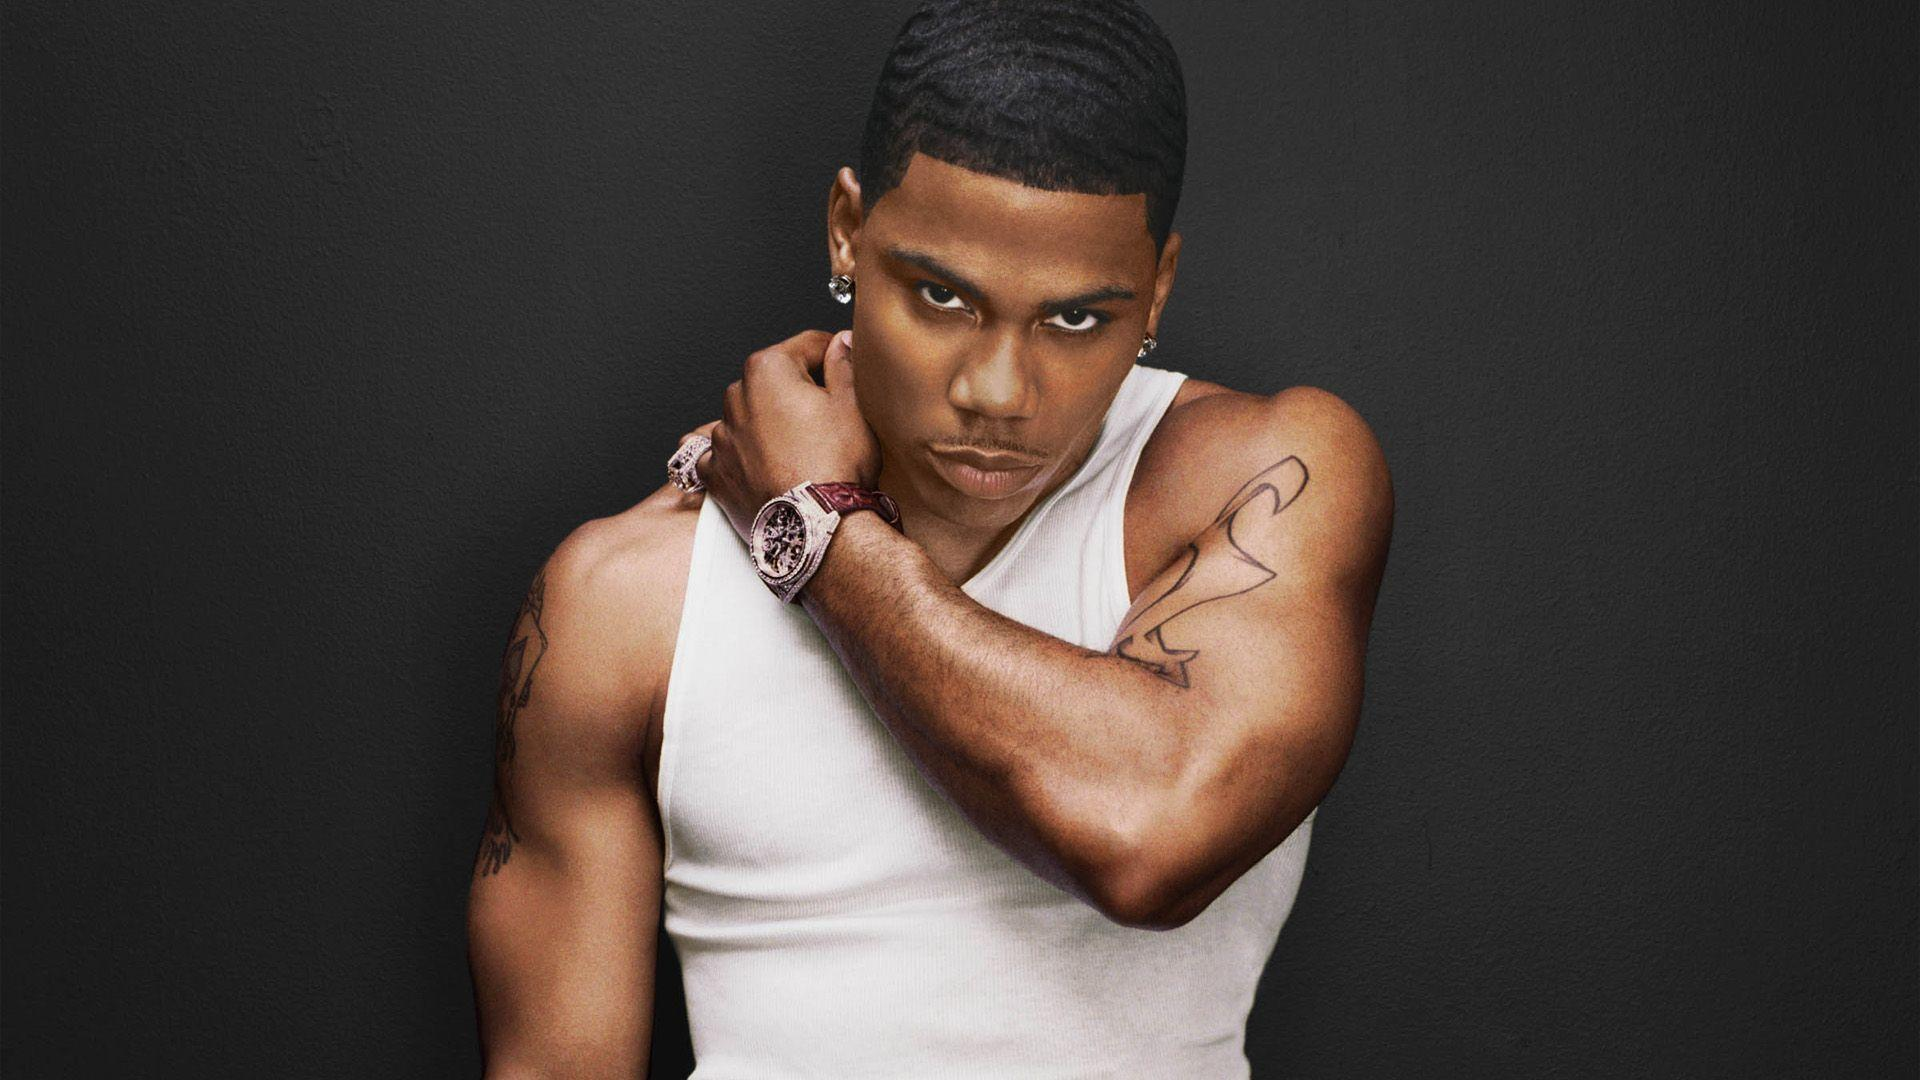 Nelly Rapper wallpapers